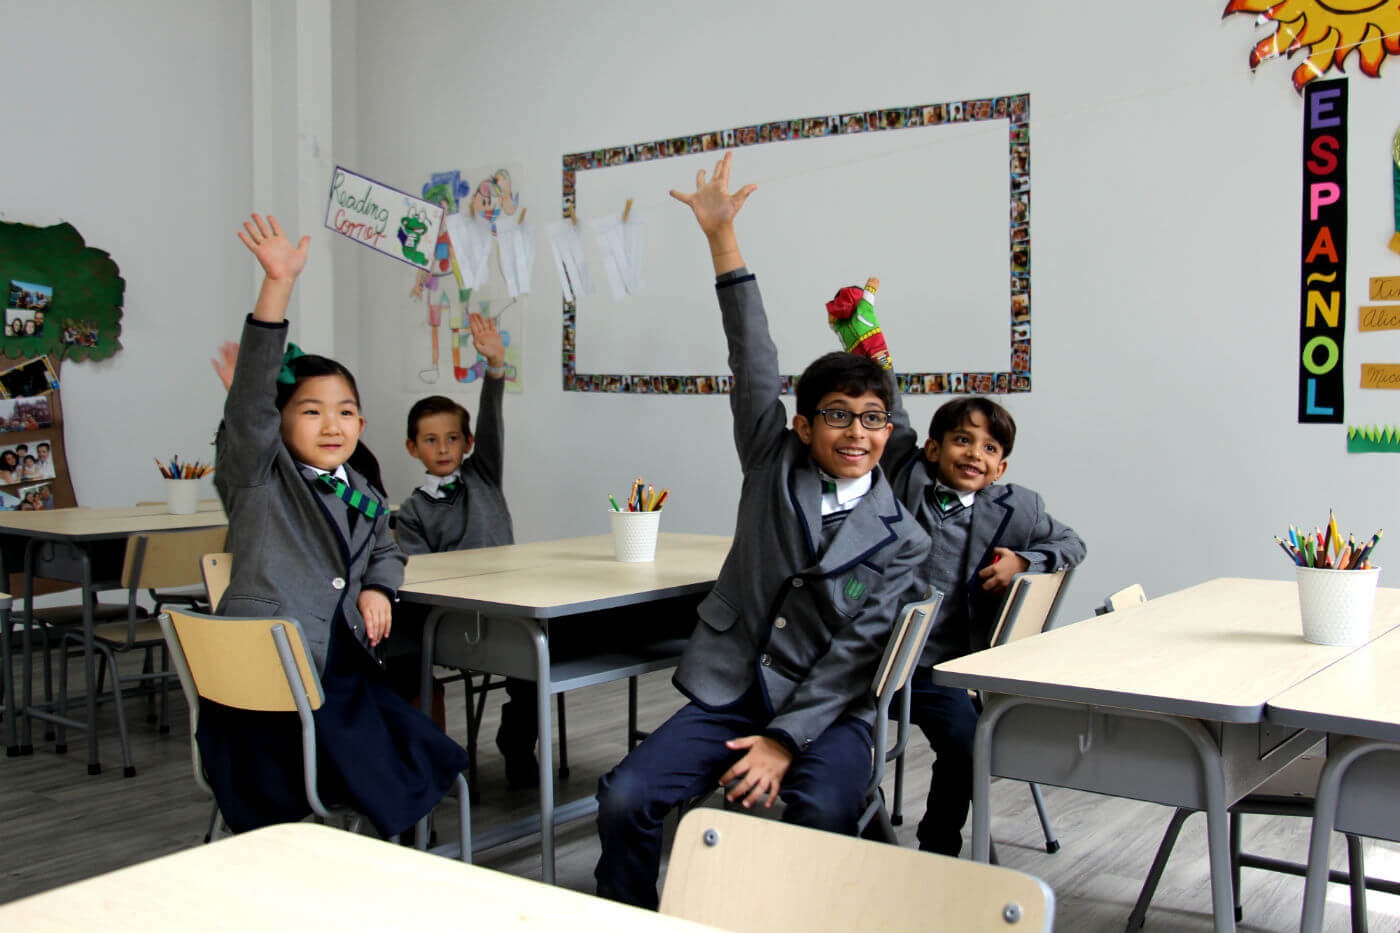 A British International school with a focus on human values and formation